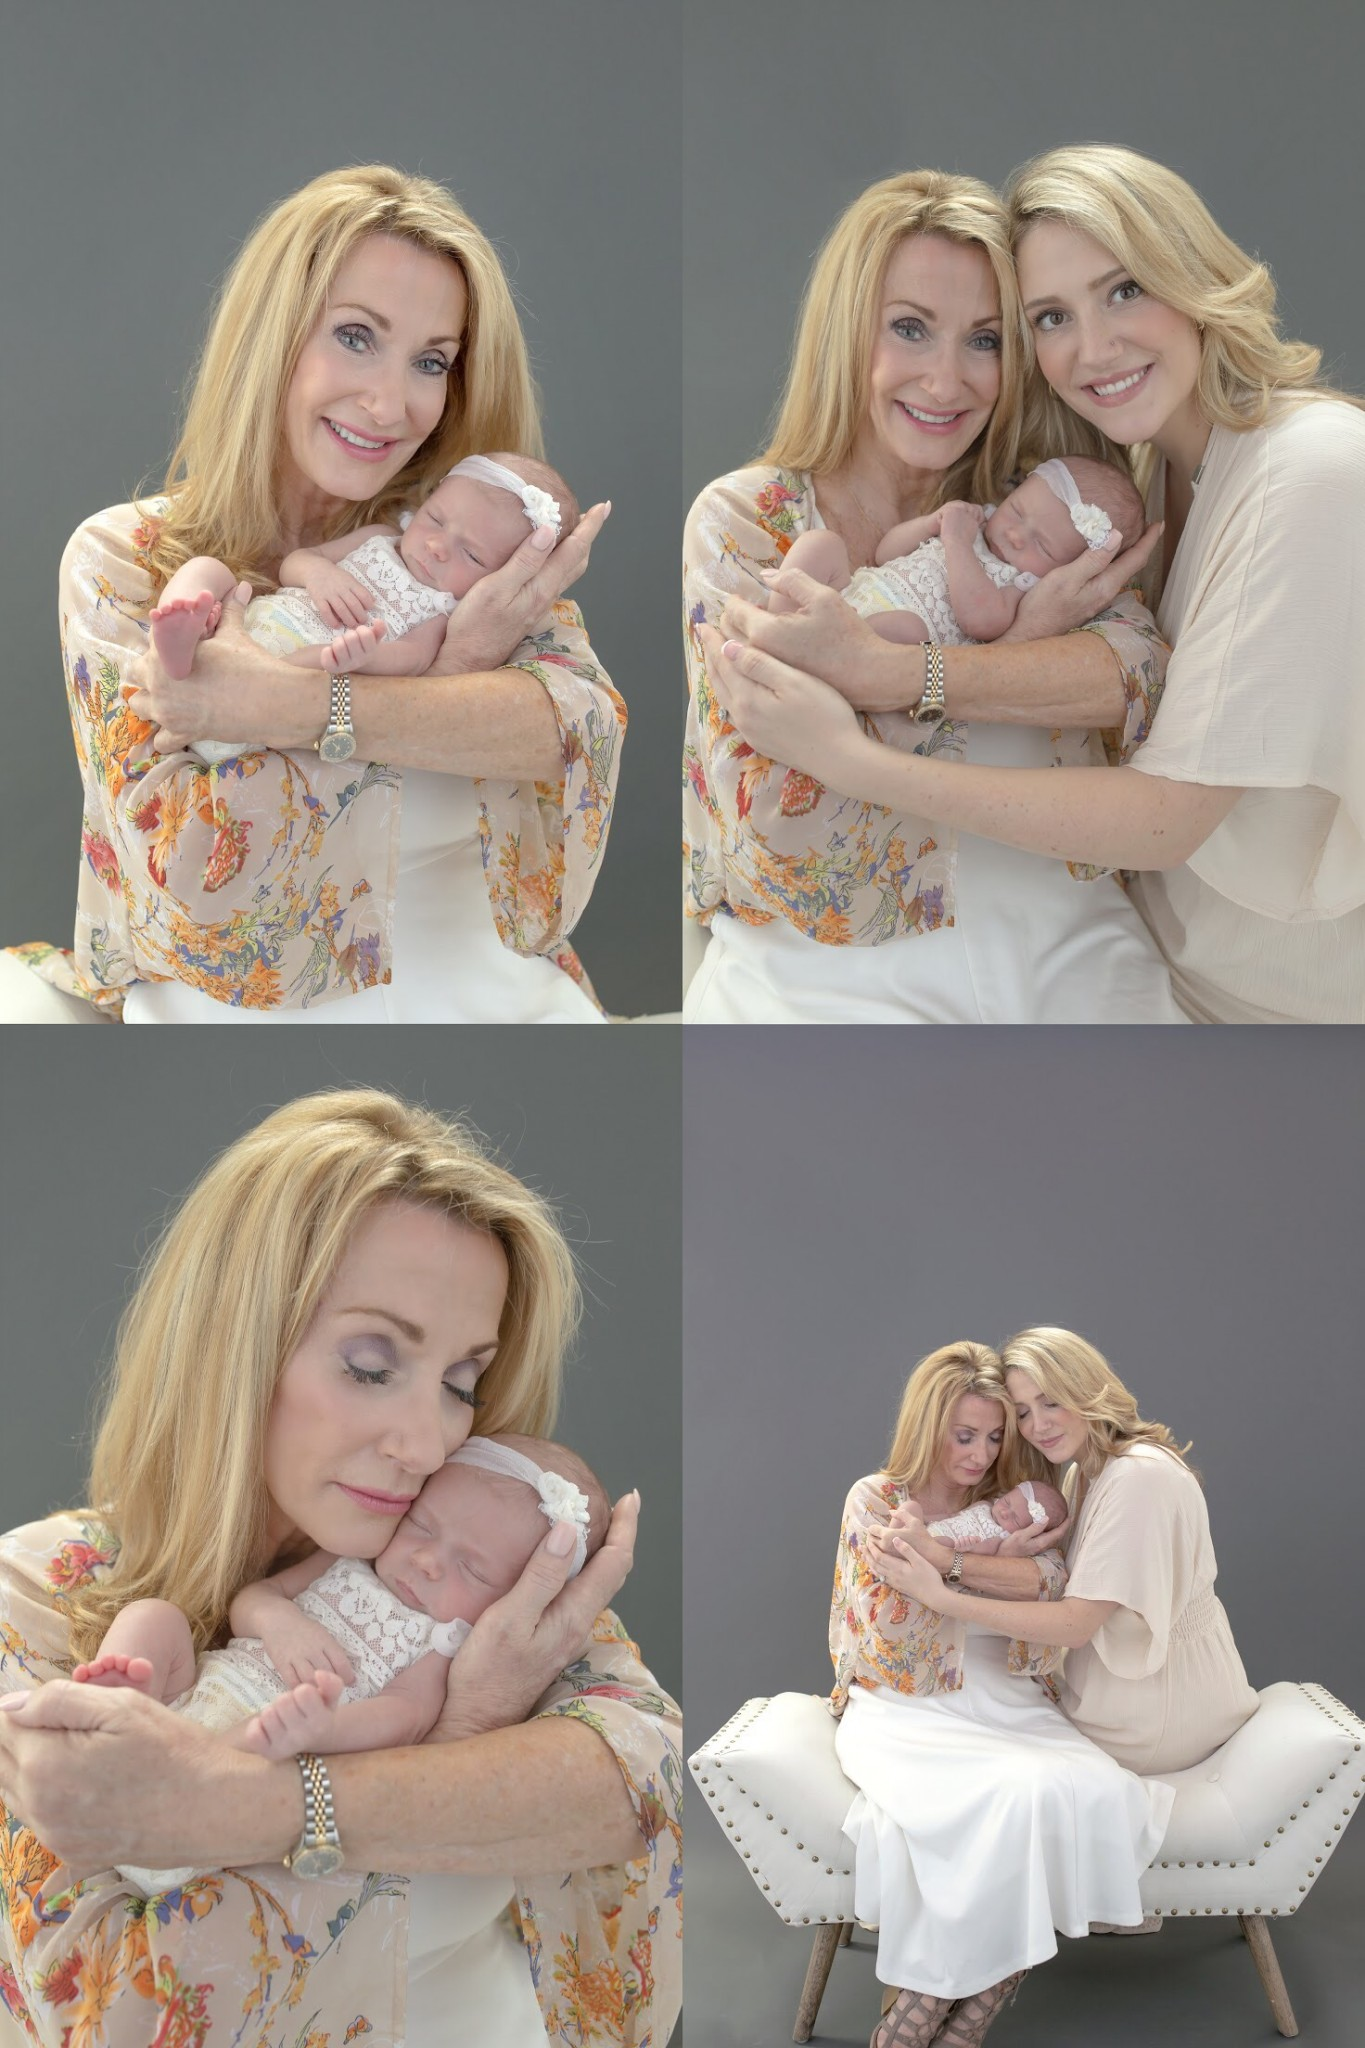 newborn family portrait session with three generations in Dallas